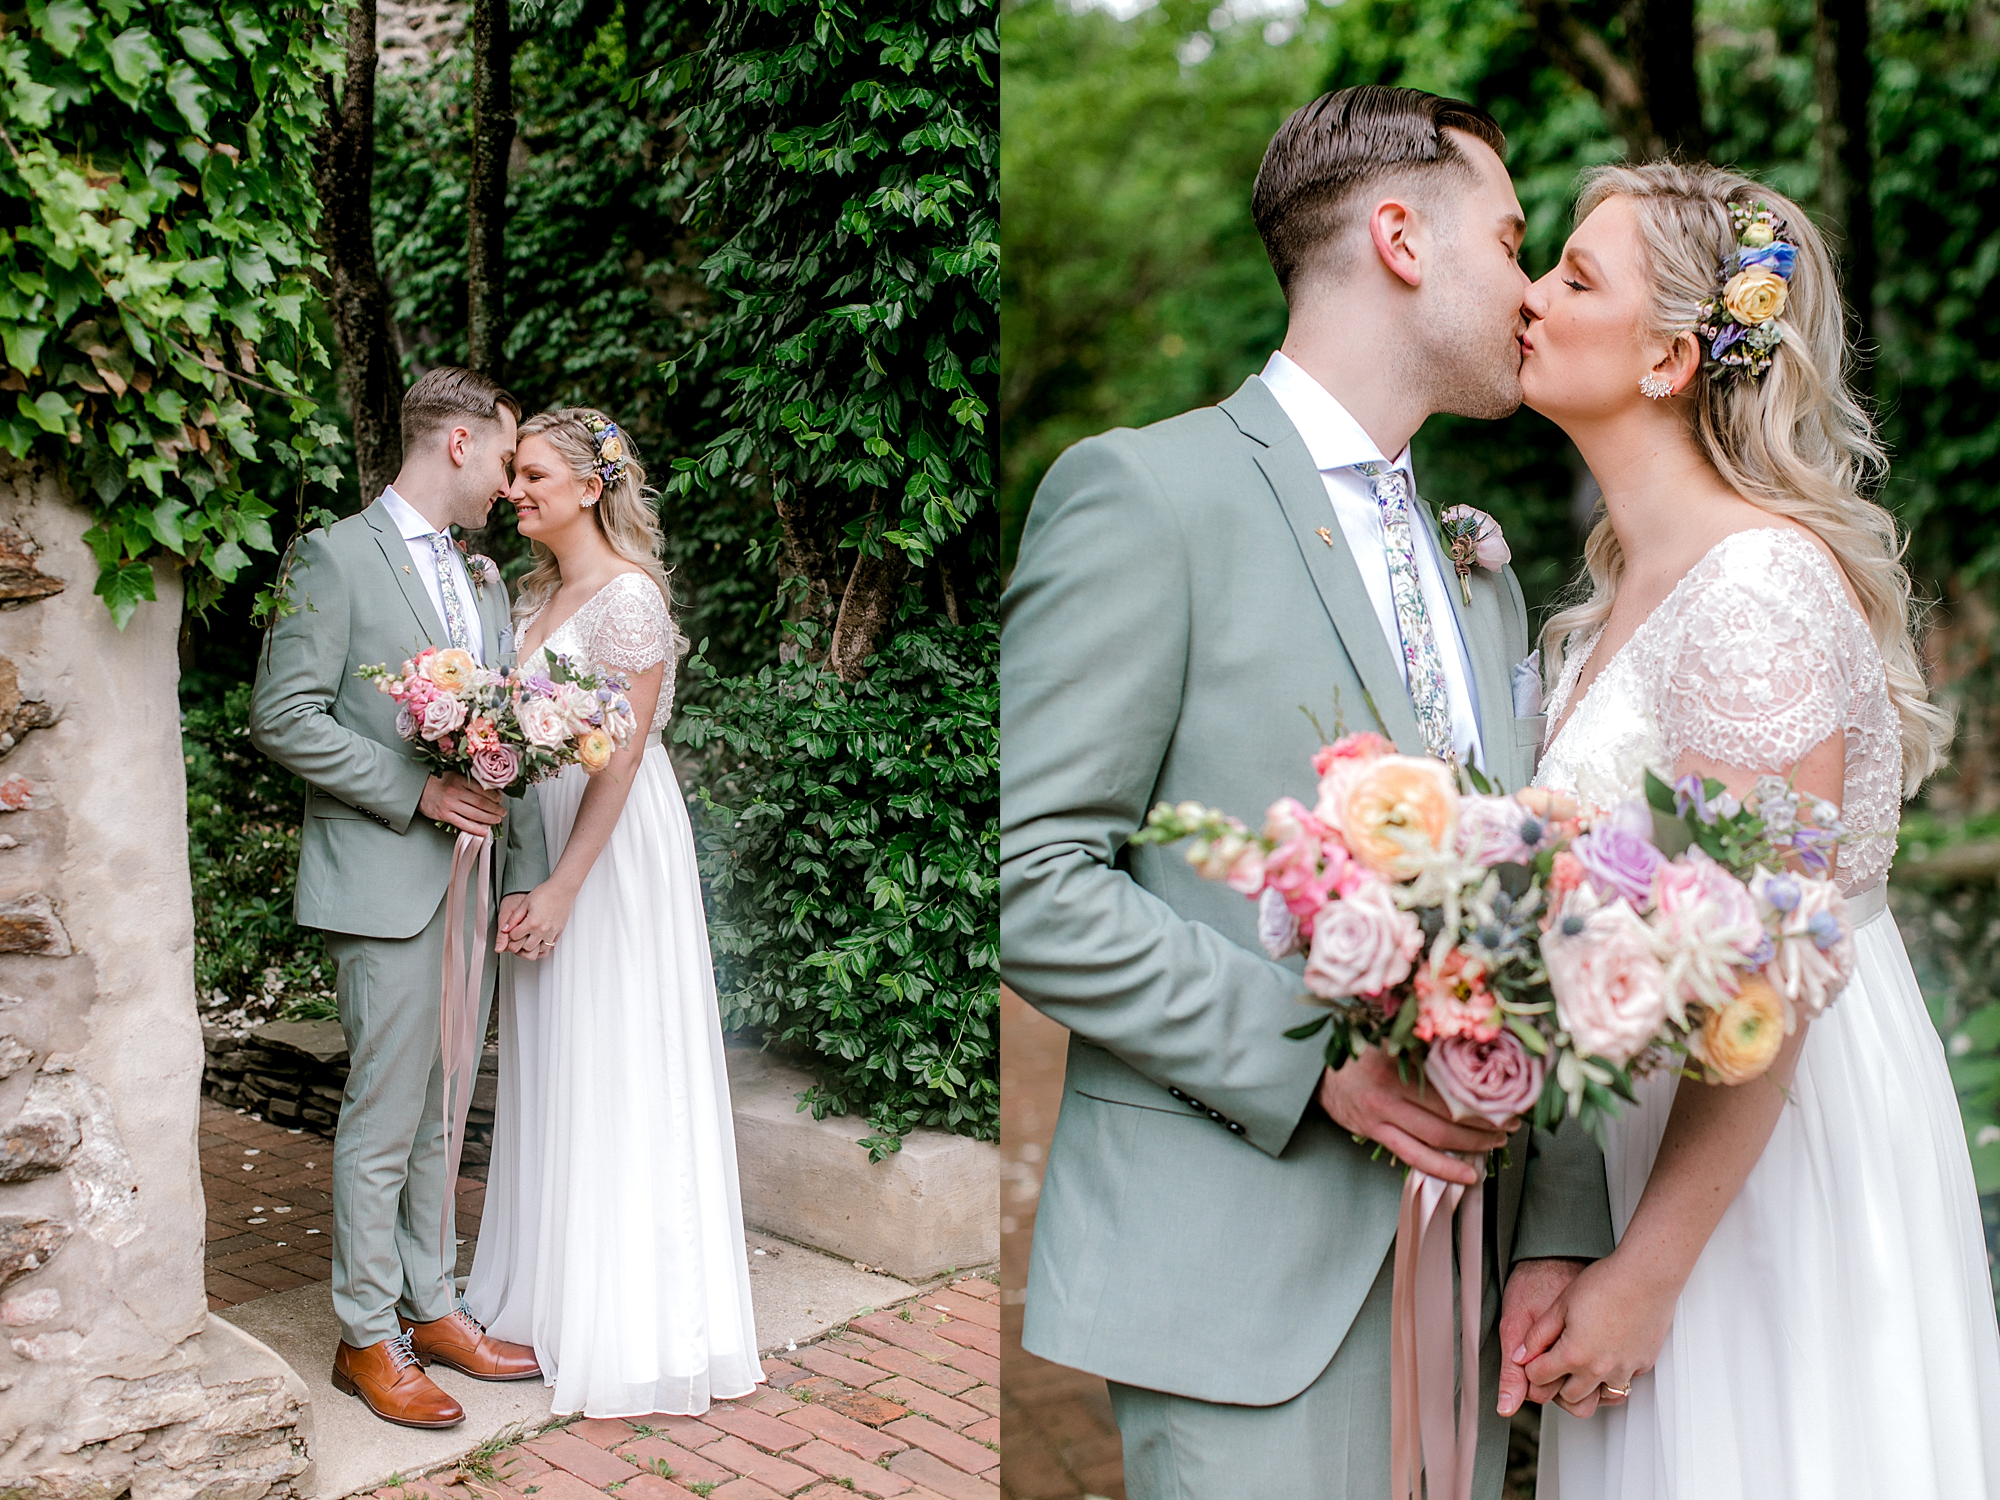 Intimate and Sweet Estate Wedding Photography by Magdalena Studios 0048